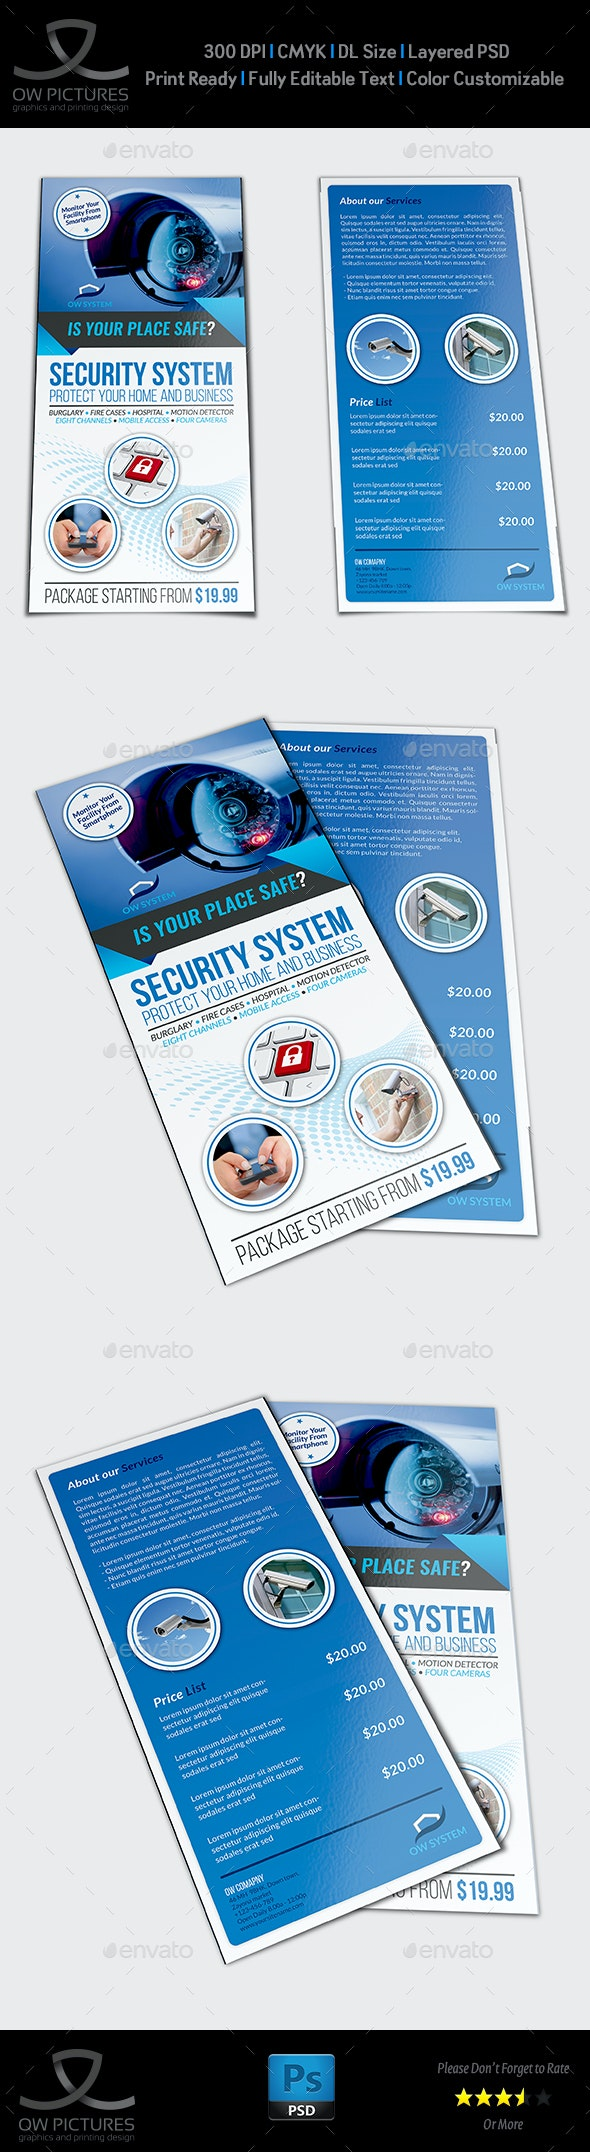 Security System Flyer DL Size Template - Commerce Flyers